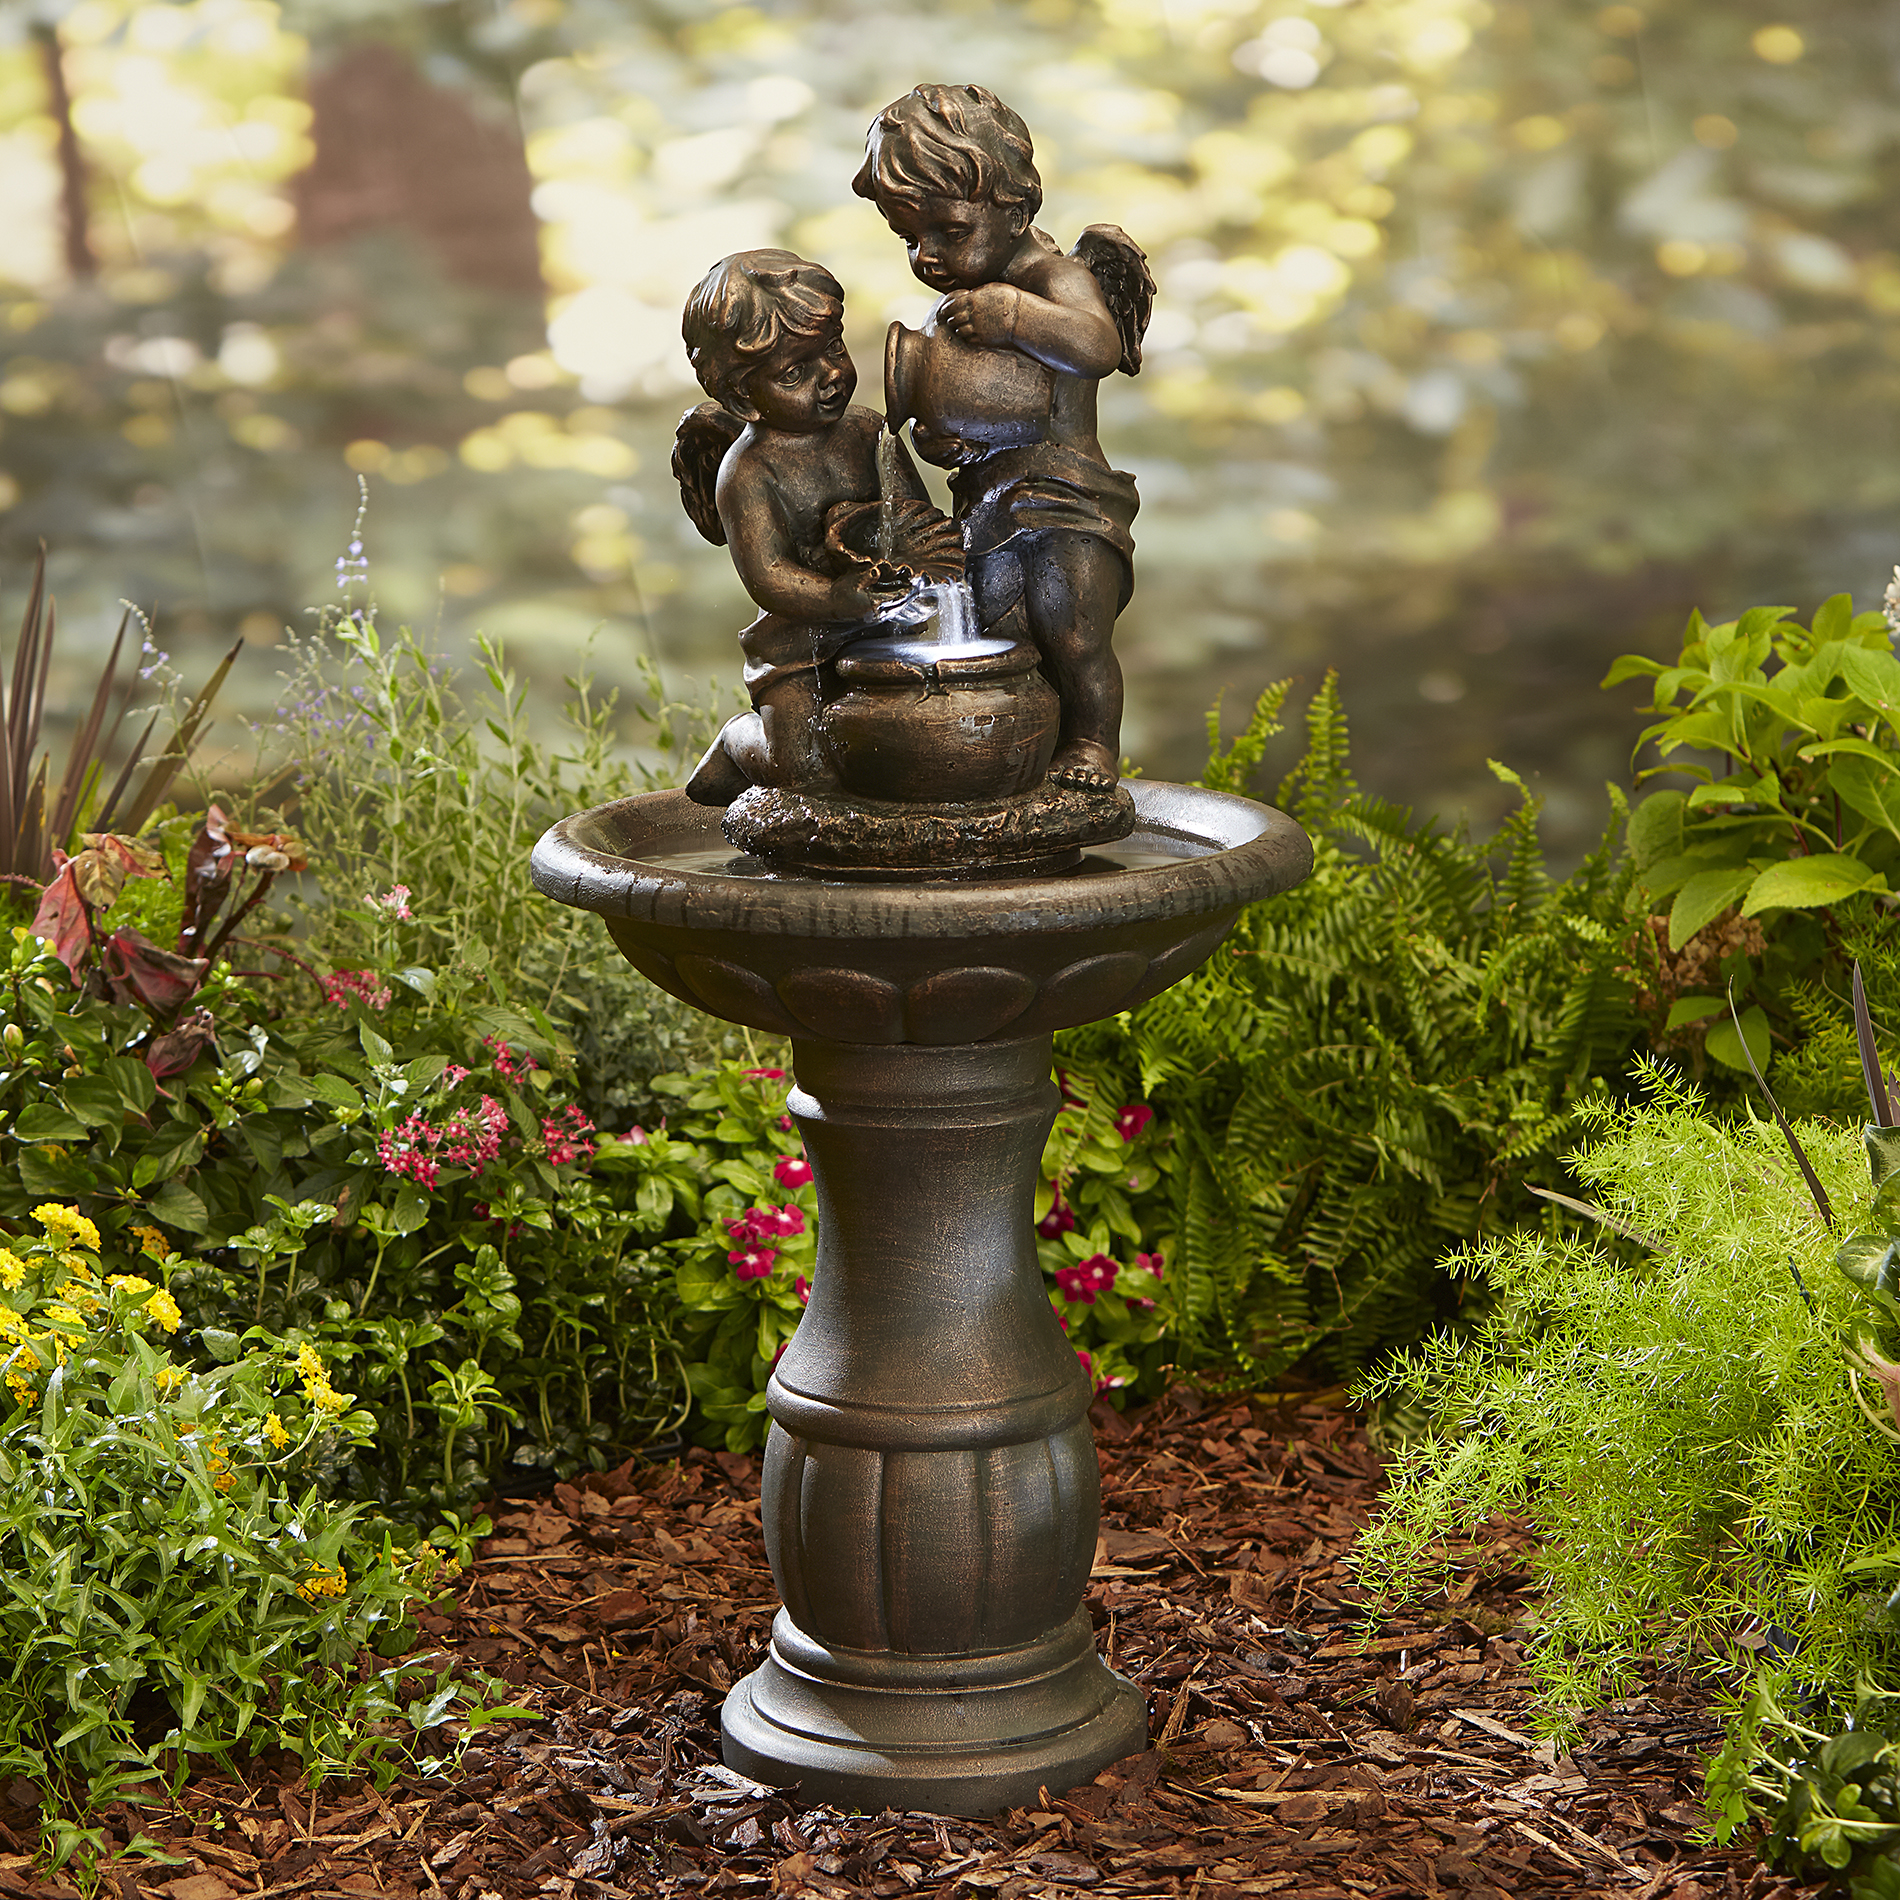 Garden Oasis Cherubs Fountain LIMITED AVAILABILITY